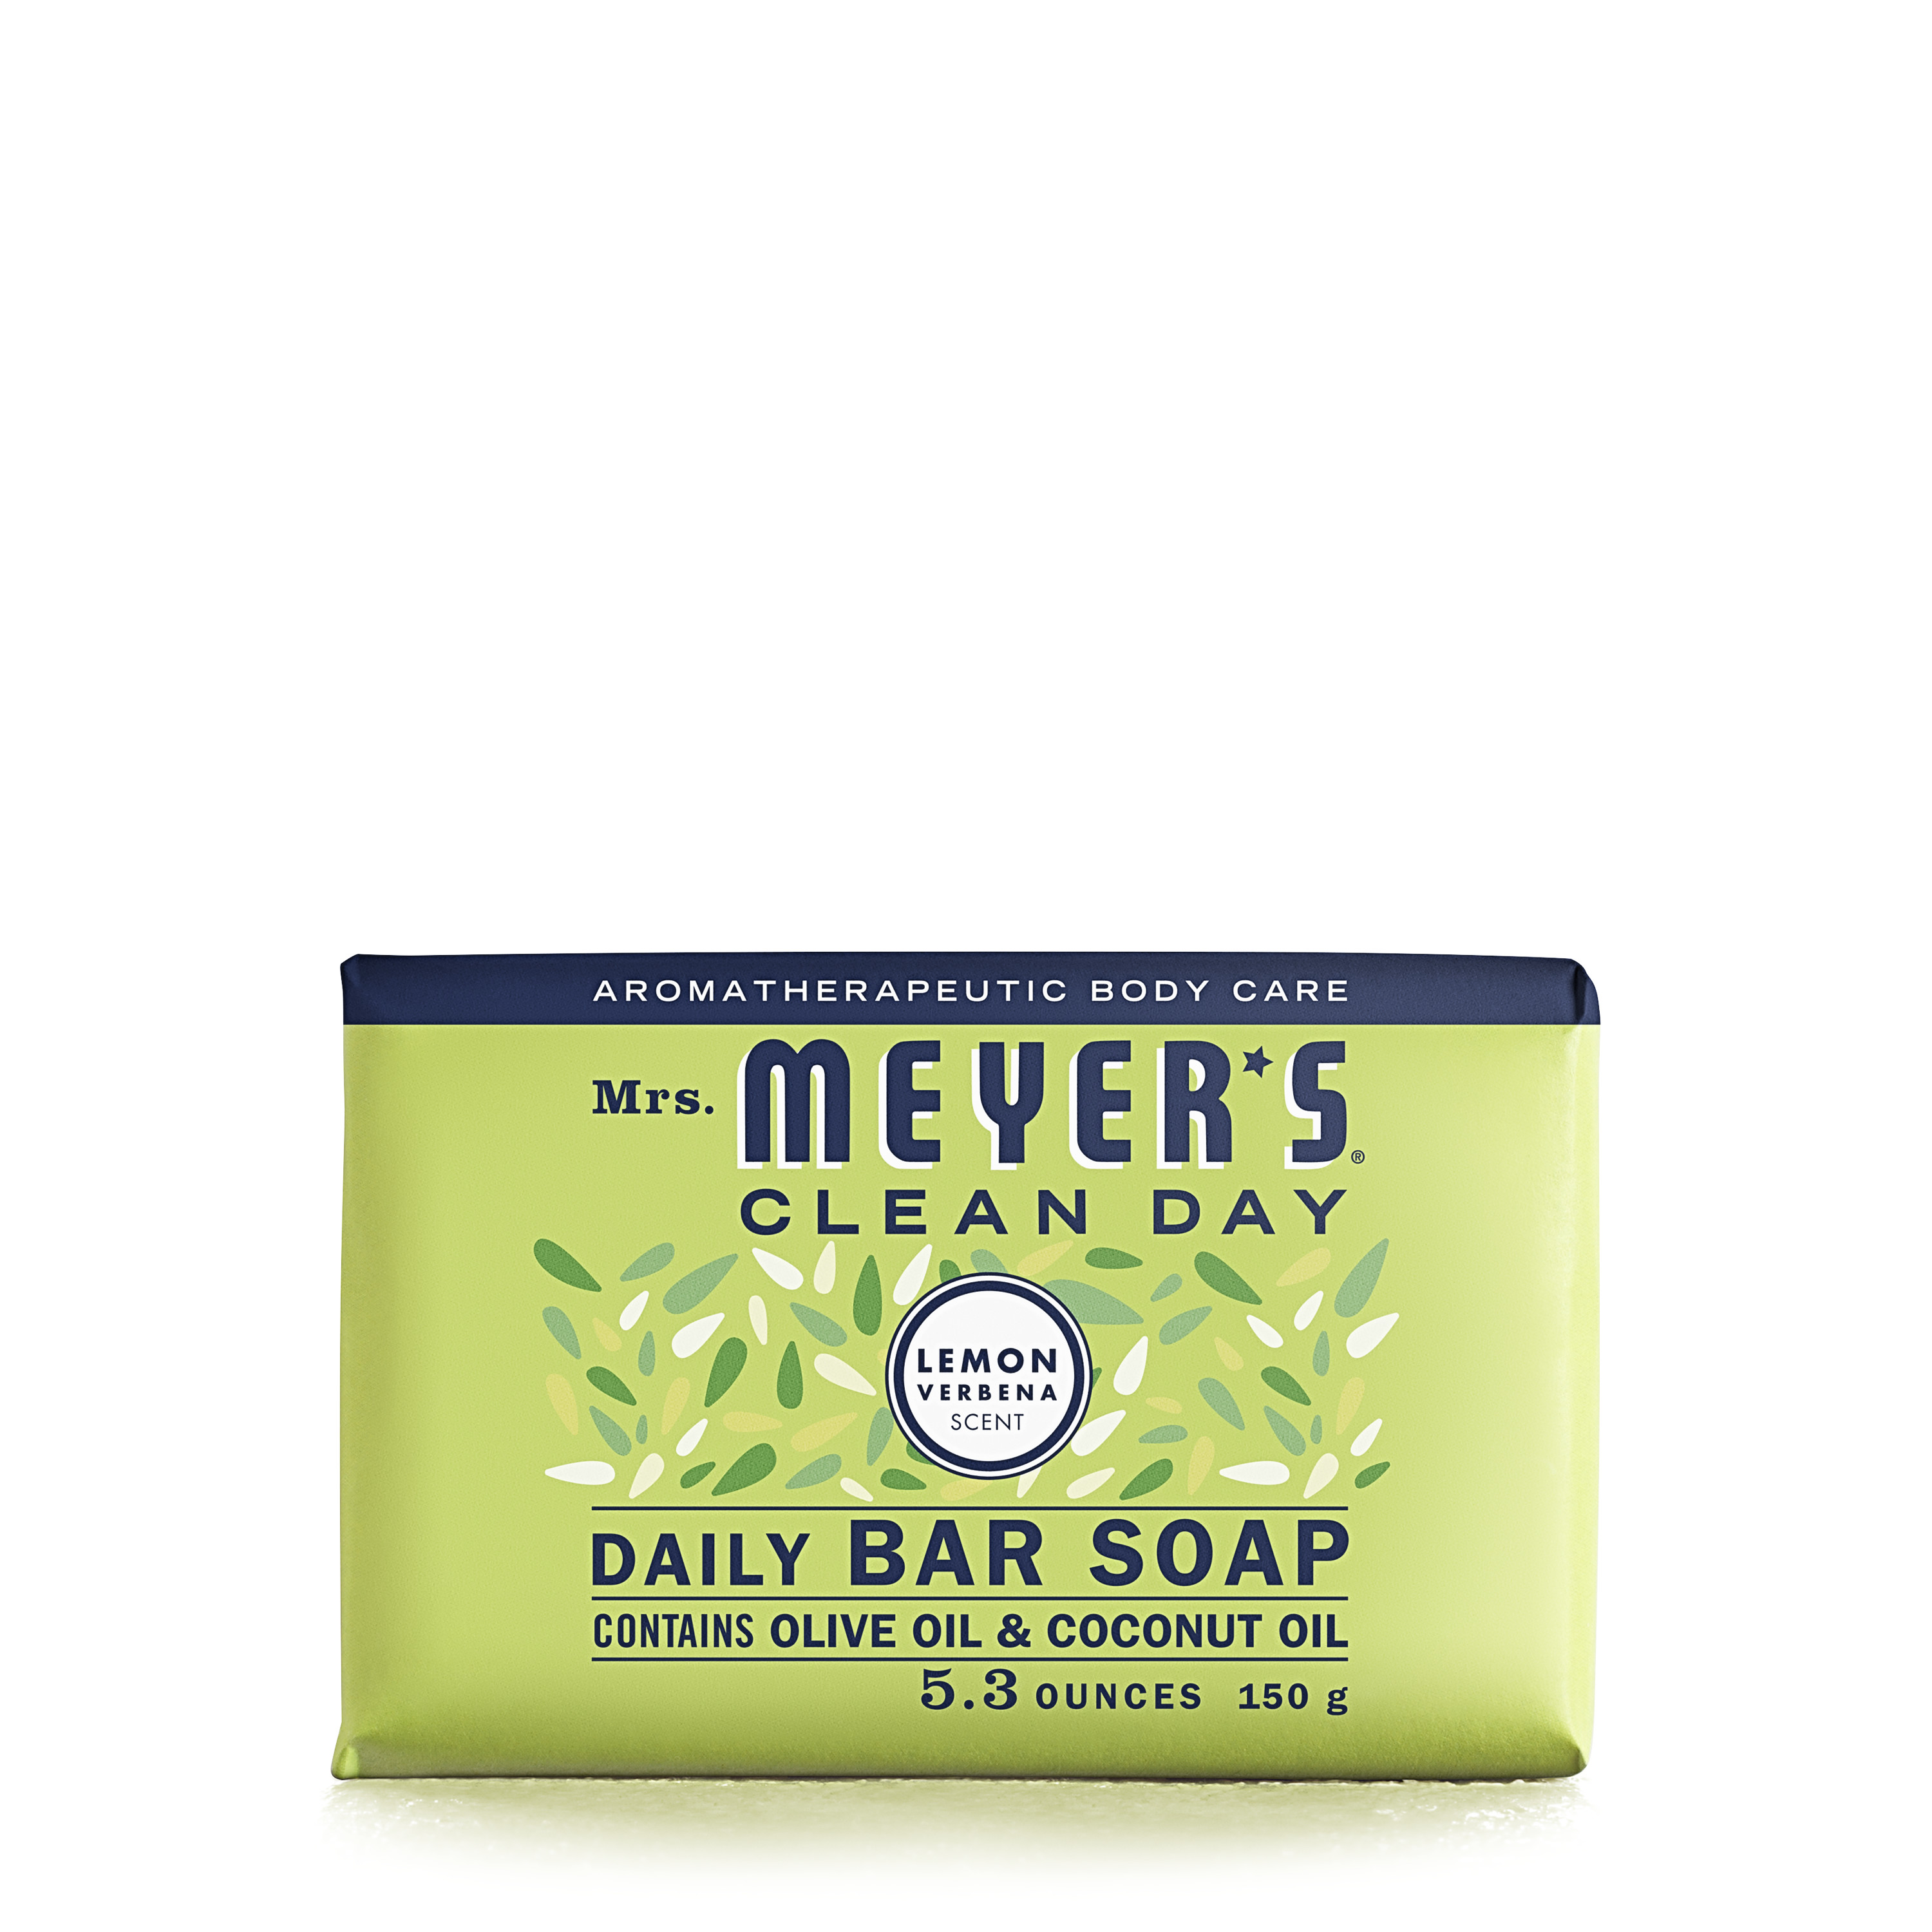 Mrs. Meyer's Clean Day Bar Handsoap, Lemon Verbena, 5.3 Oz